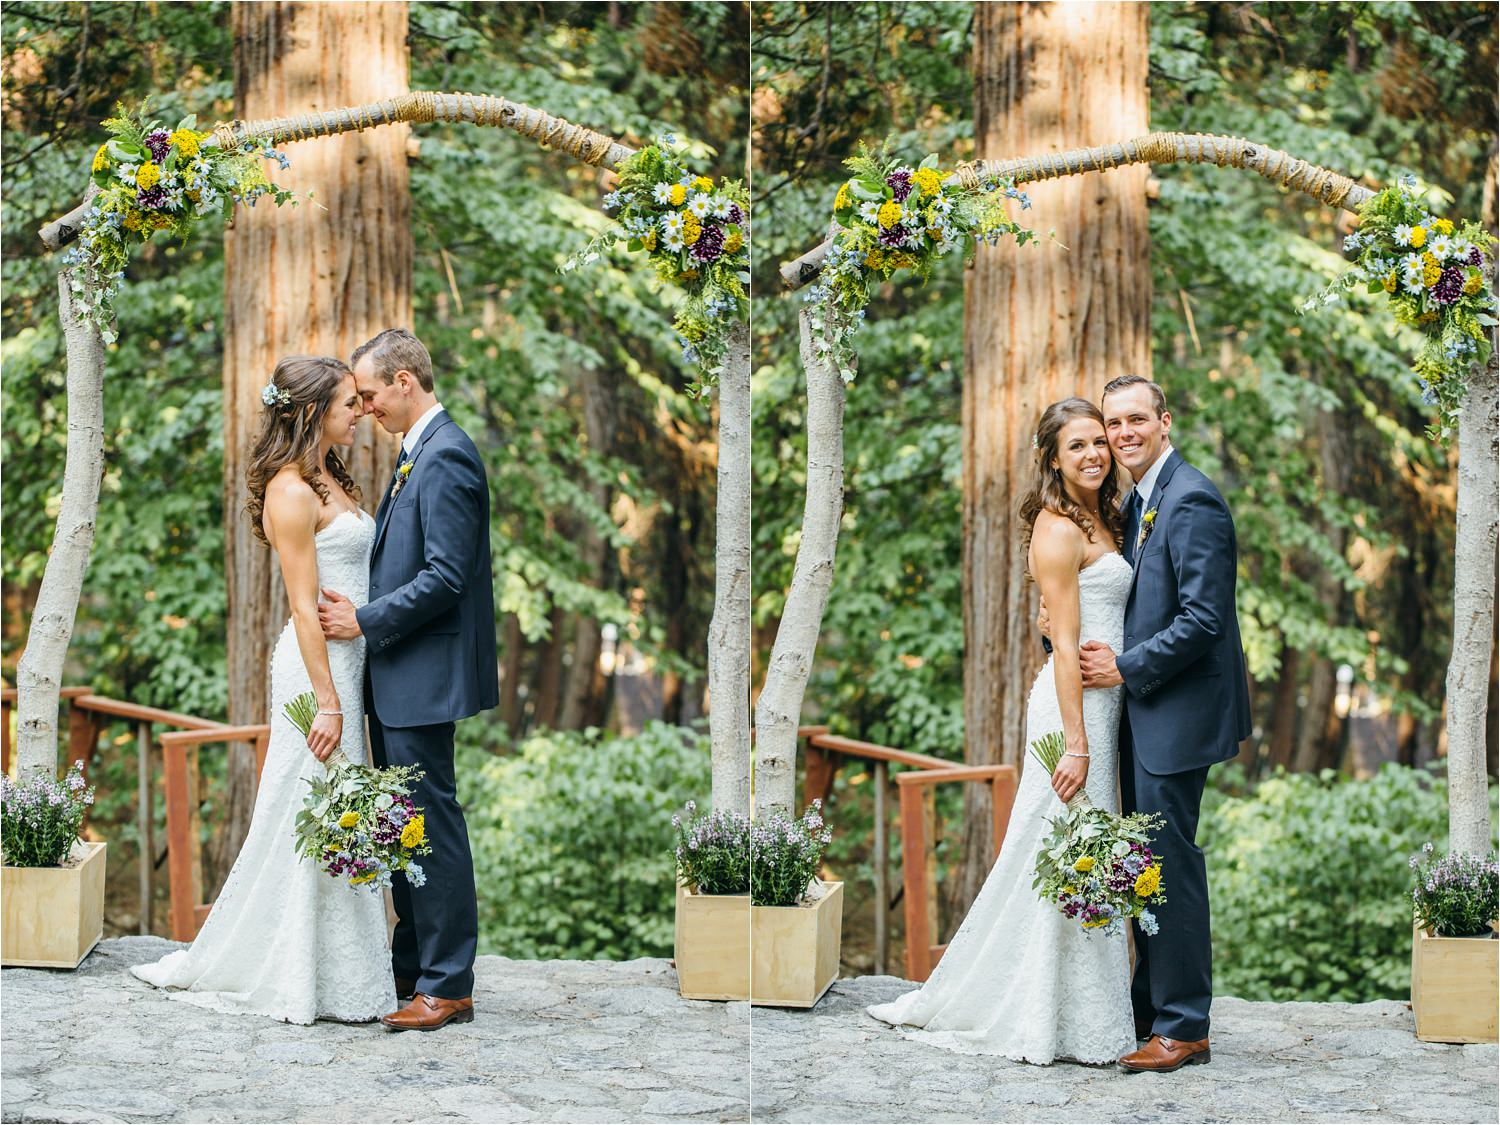 Mountain Bride and Groom - Wedding in the Mountains - Lake Arrowhead Wedding Photographer - https://brittneyhannonphotography.com